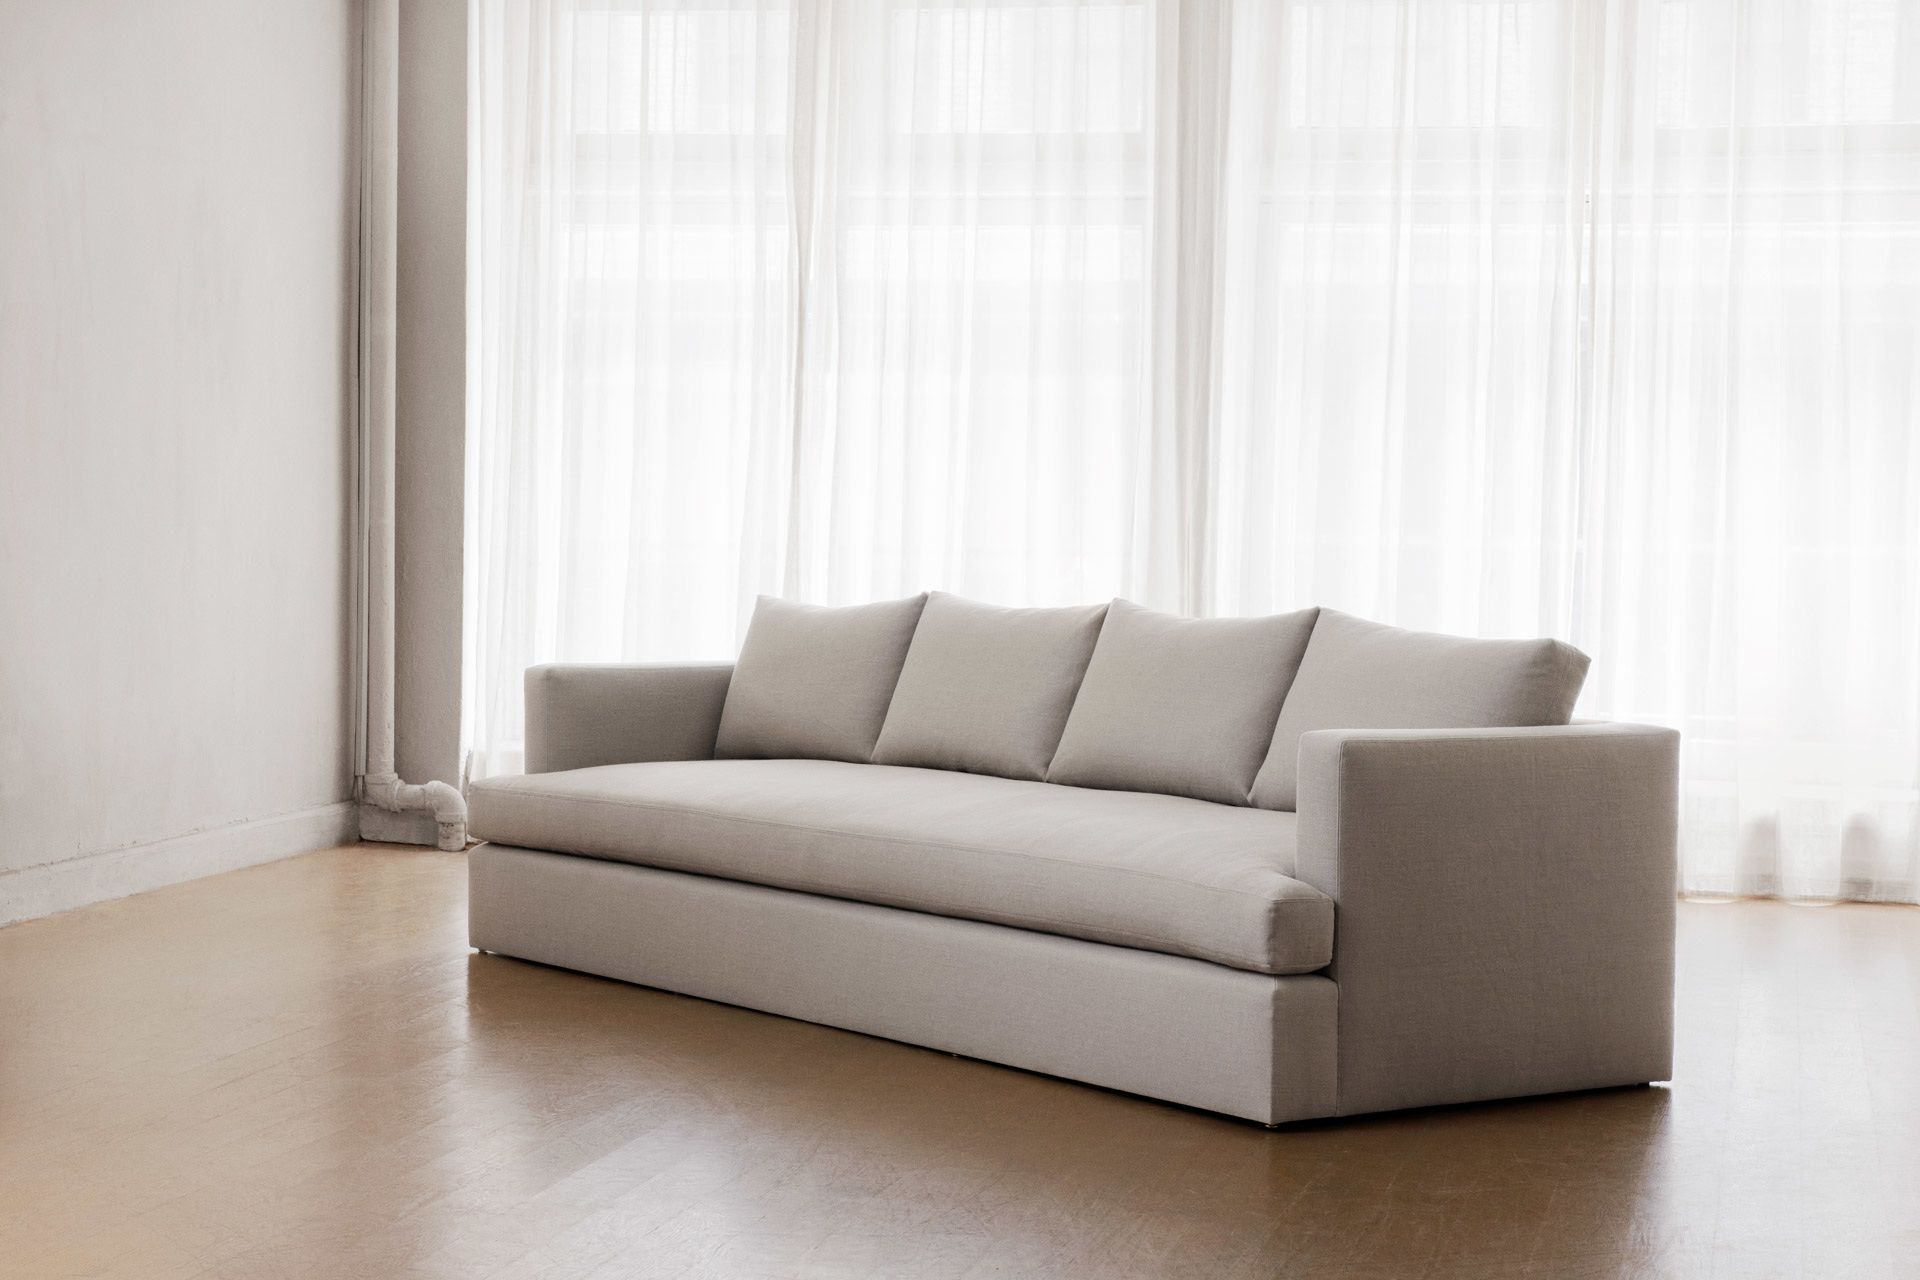 chelsea square sofa ikea online dmitriy co exotic project furniture